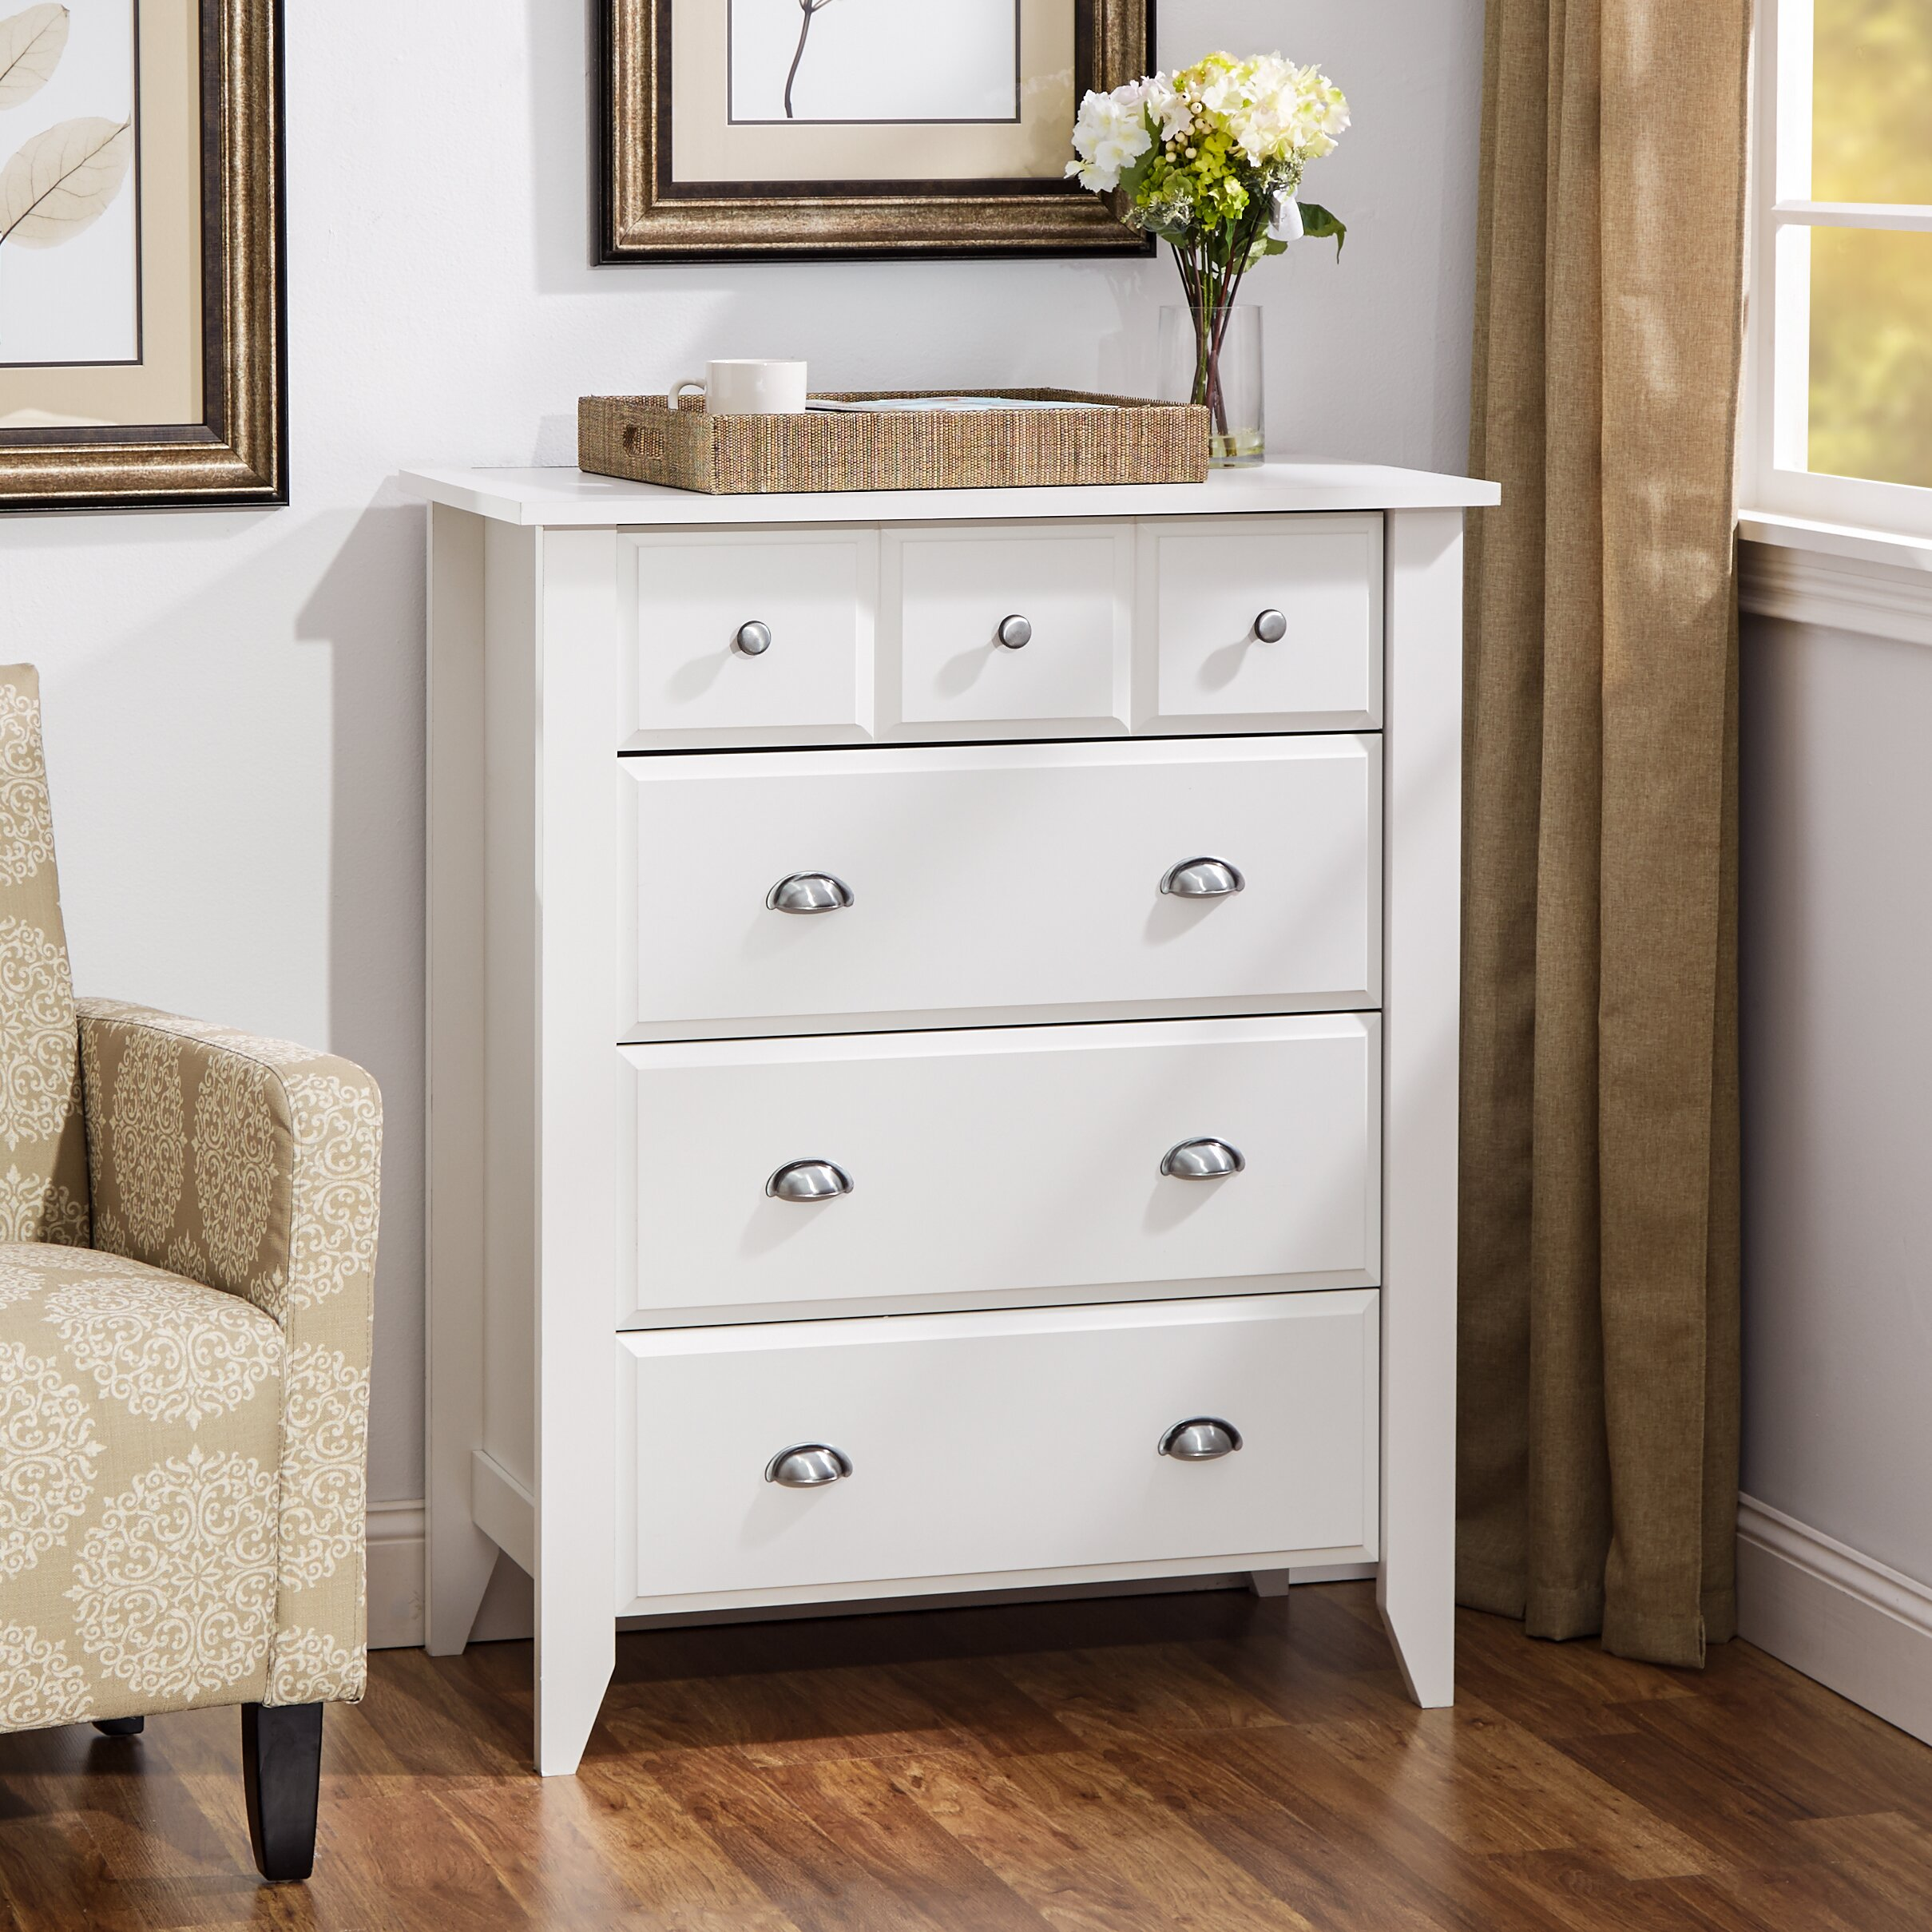 andover mills revere 4 drawer chest reviews wayfair. Black Bedroom Furniture Sets. Home Design Ideas